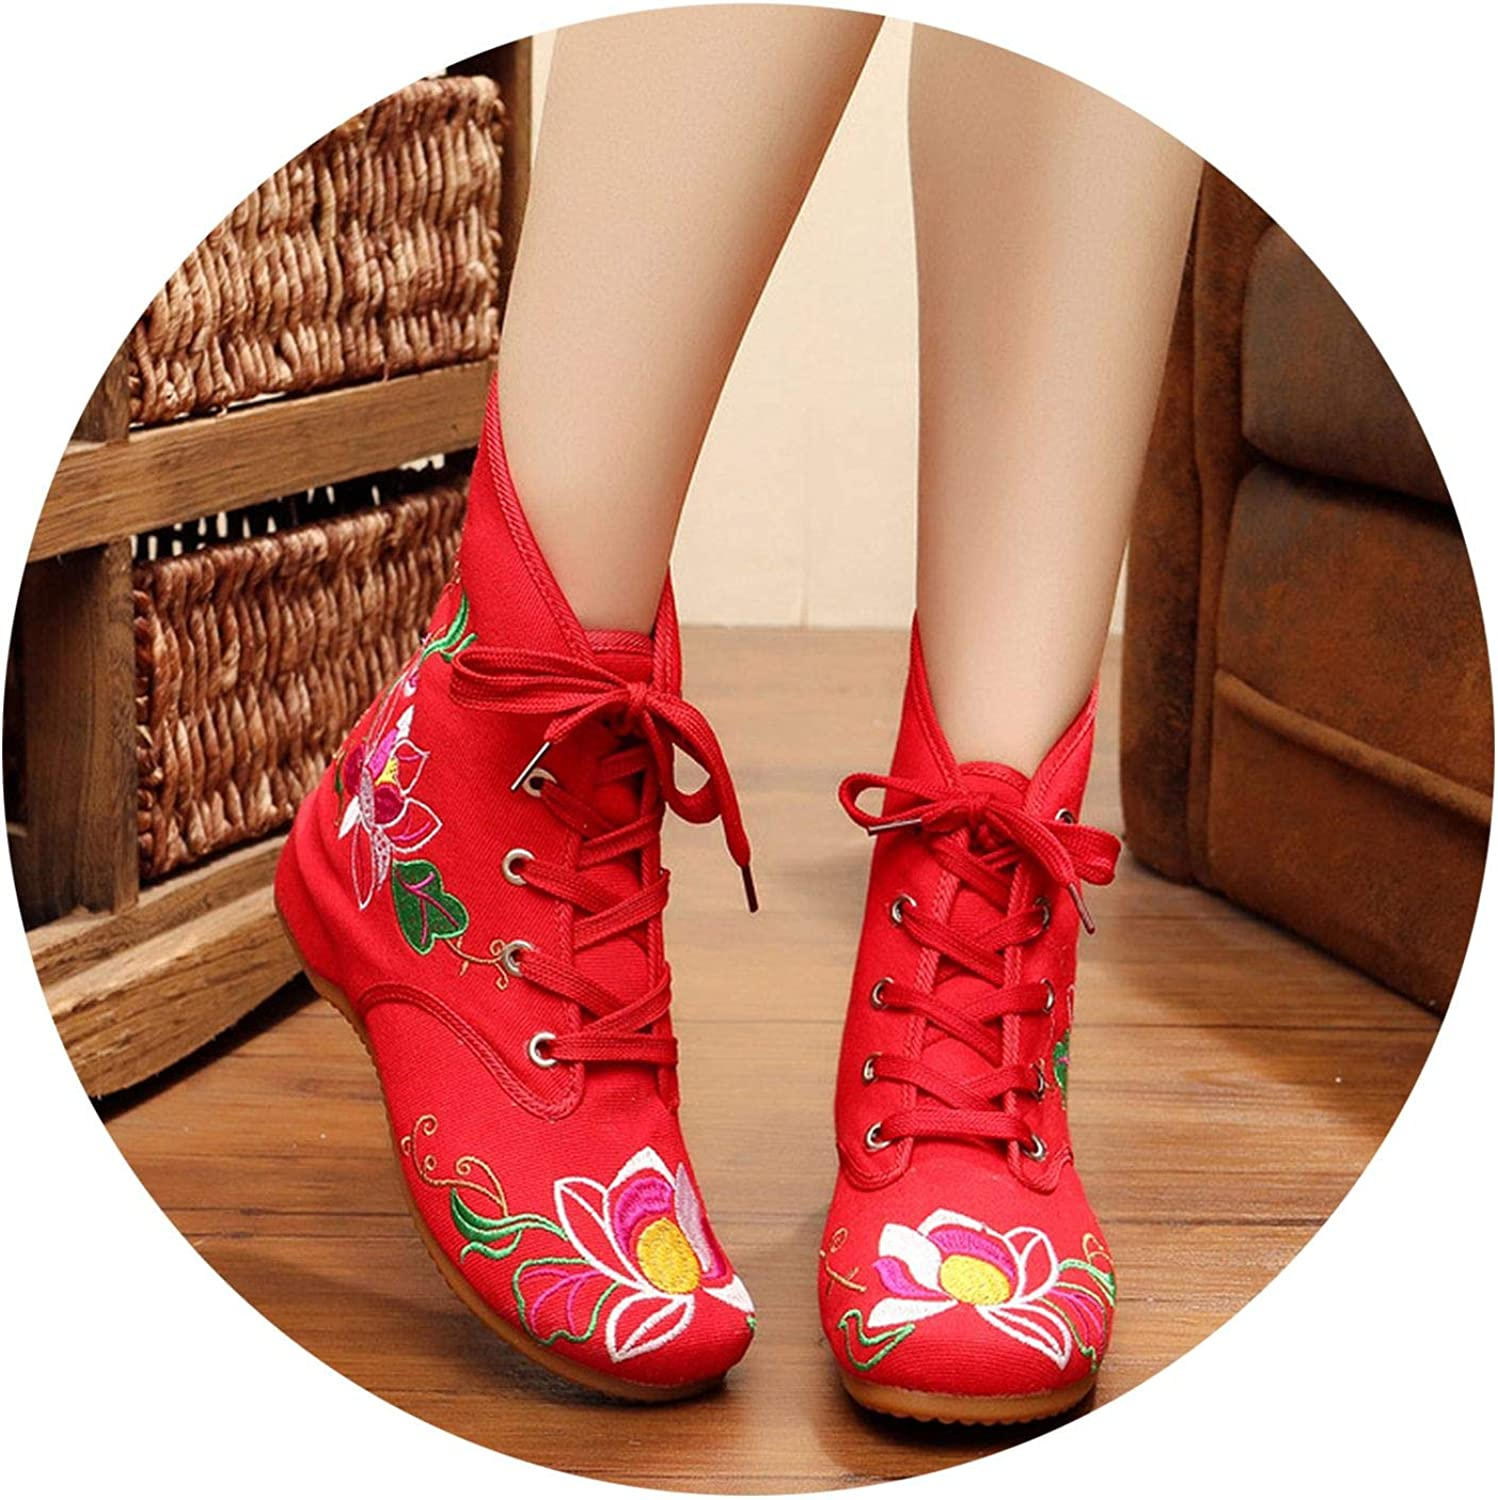 Superb Zone Spring Women shoes Embroidered Canvas shoes Increased Boots,Red,5